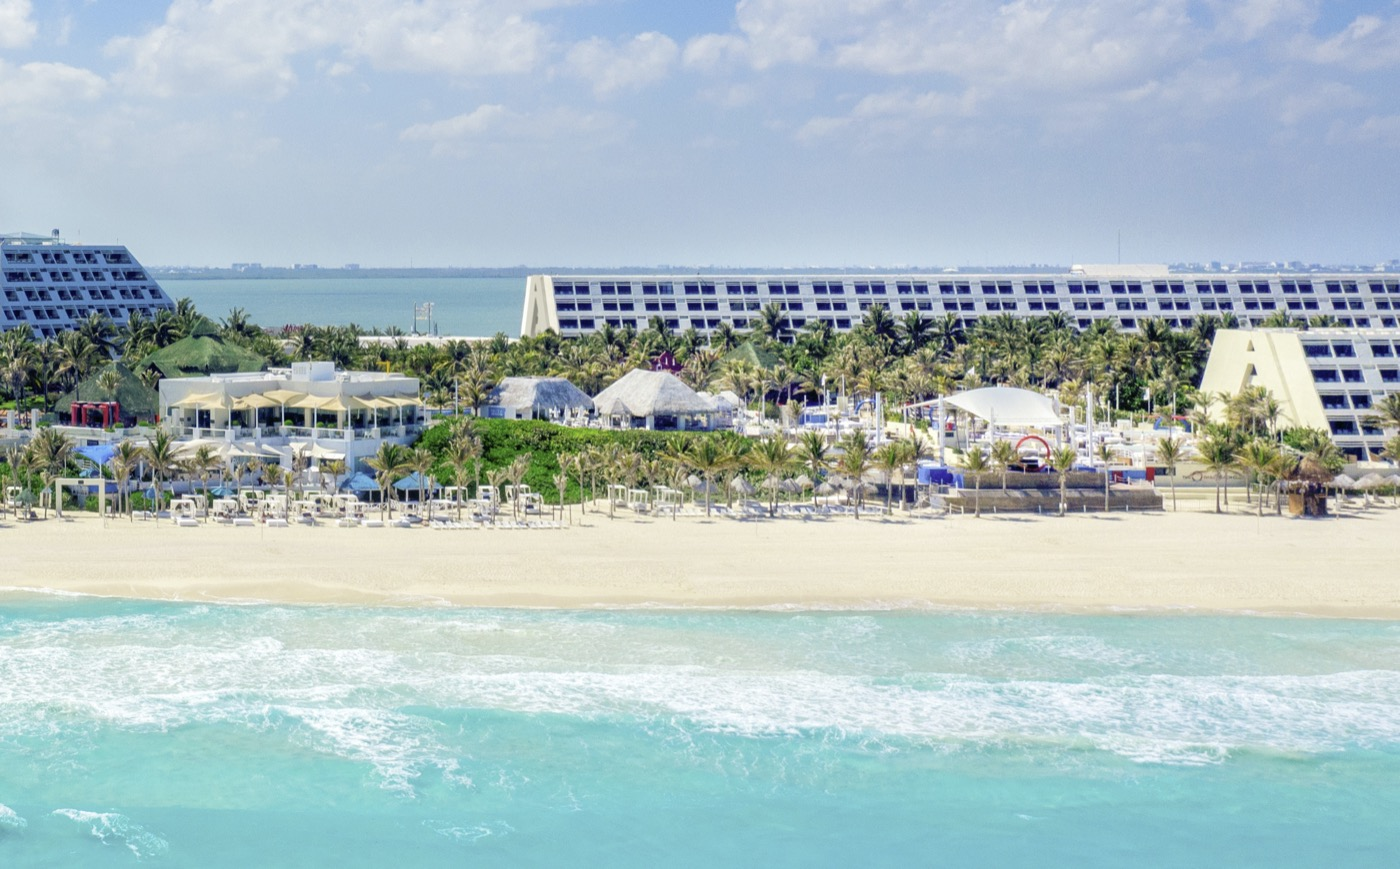 Panoramic View of Hotel Grand Oasis Cancun with ocean view